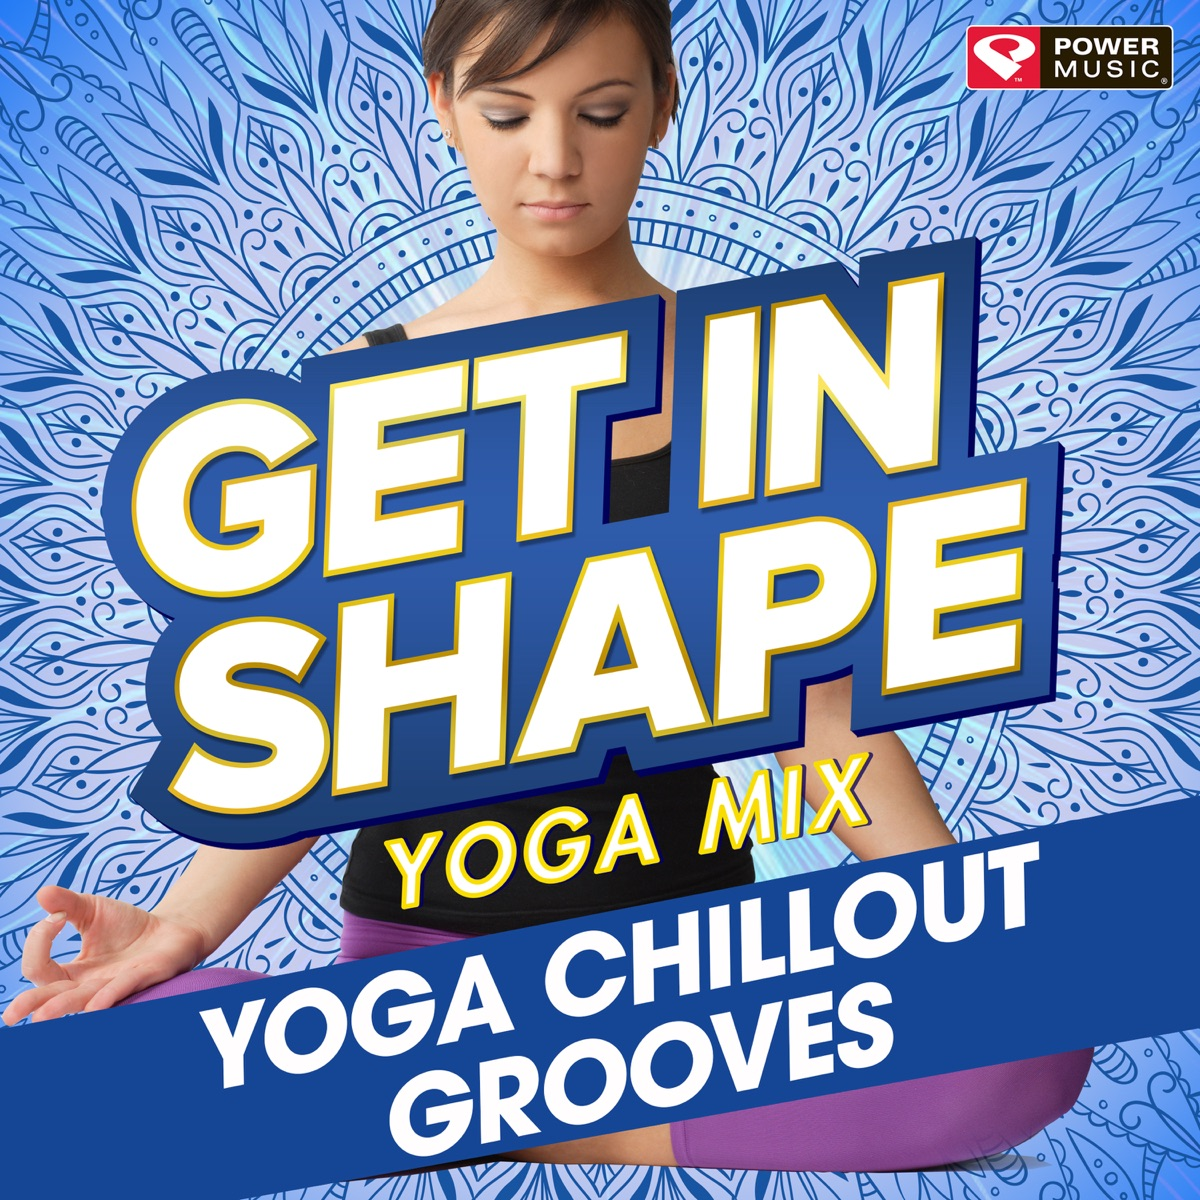 Get In Shape Yoga Mix: Yoga Chillout Grooves Album Cover by